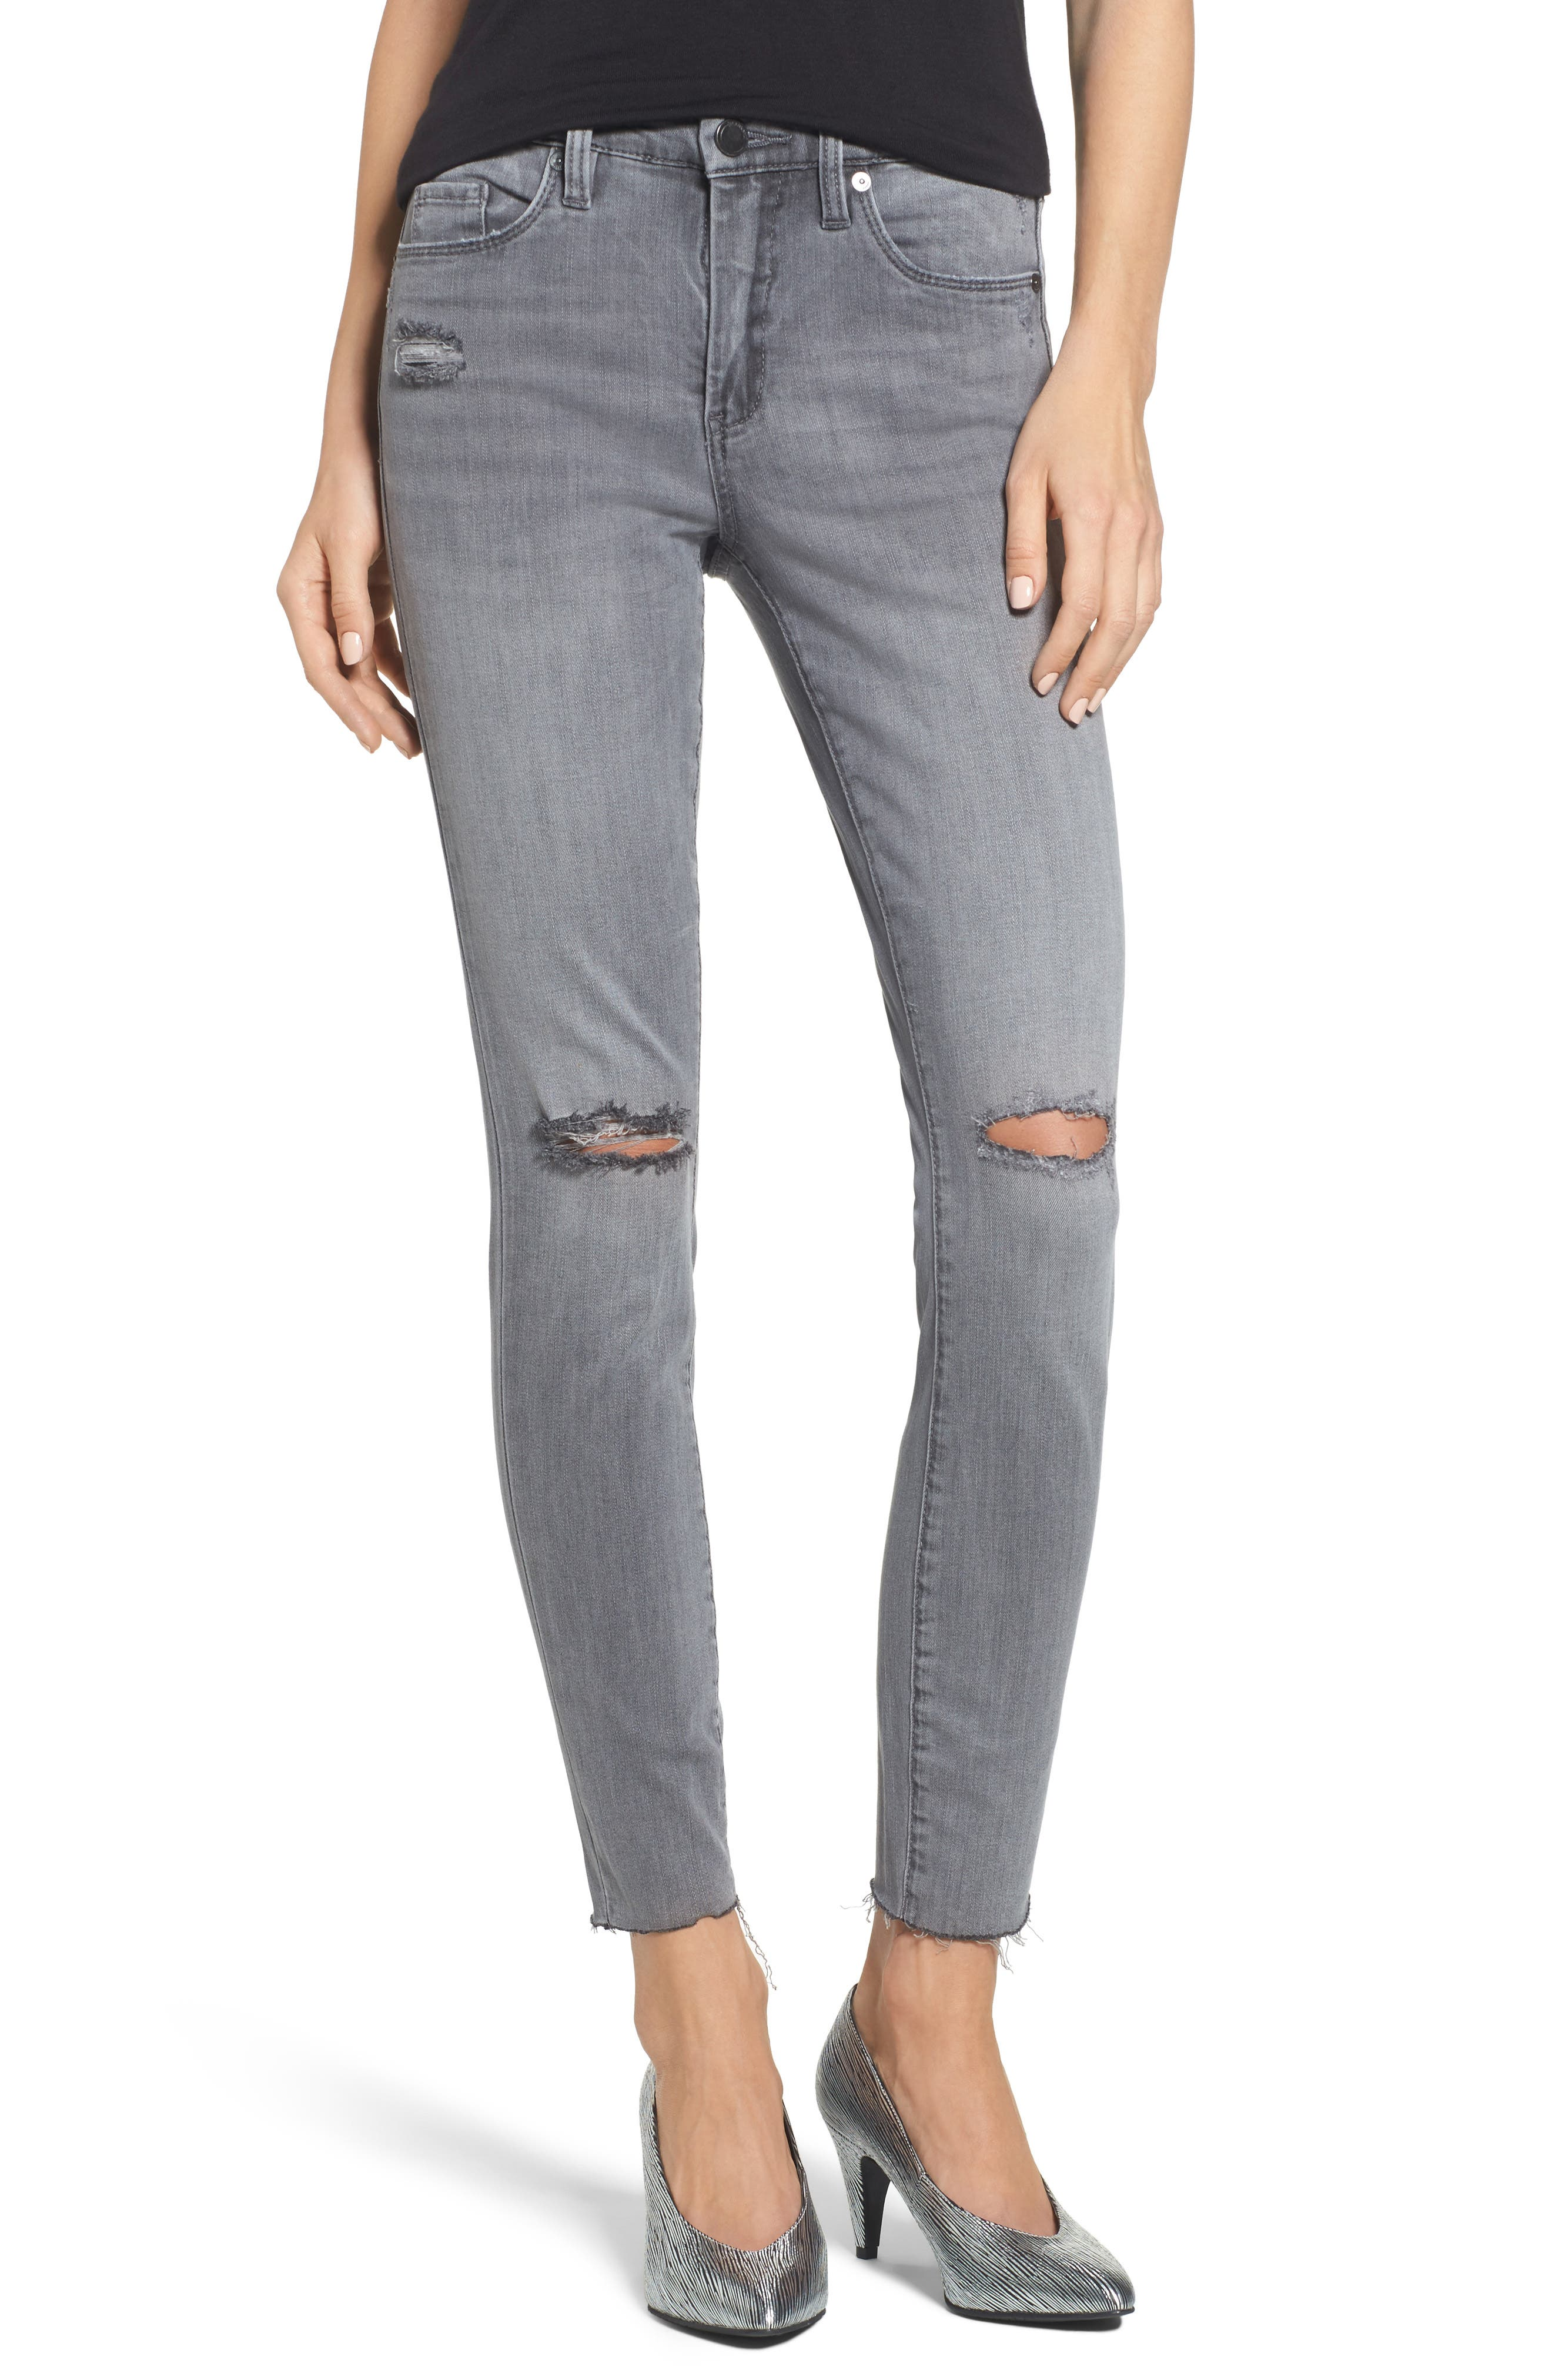 Tequila Royale Skinny Jeans,                             Main thumbnail 1, color,